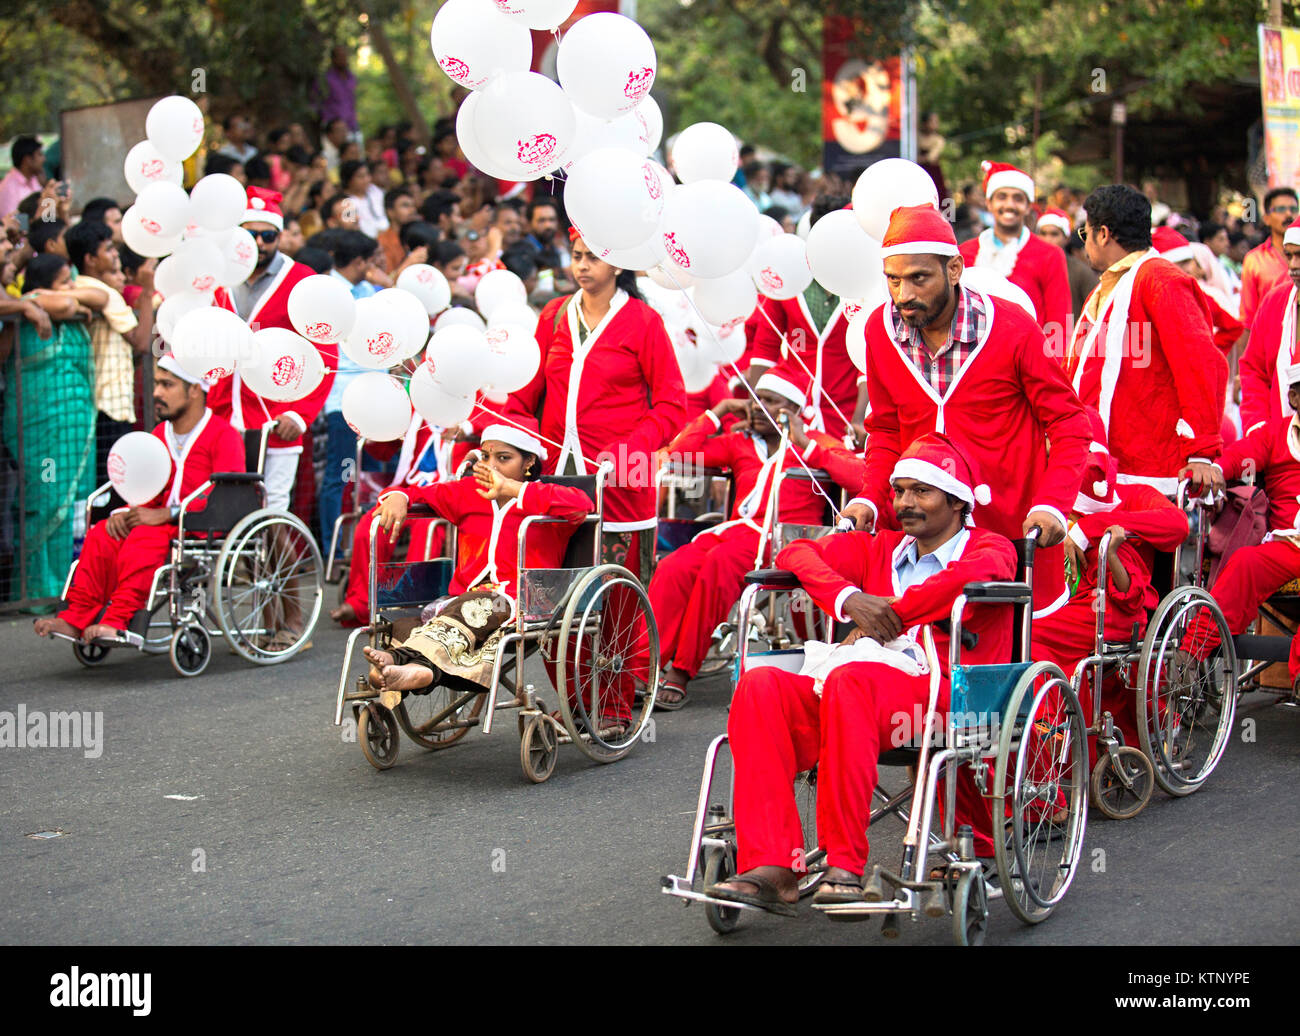 Buon Natale Thrissur.Handicapped People In Wheel Chairs Wearing Santa S Clothes Stock